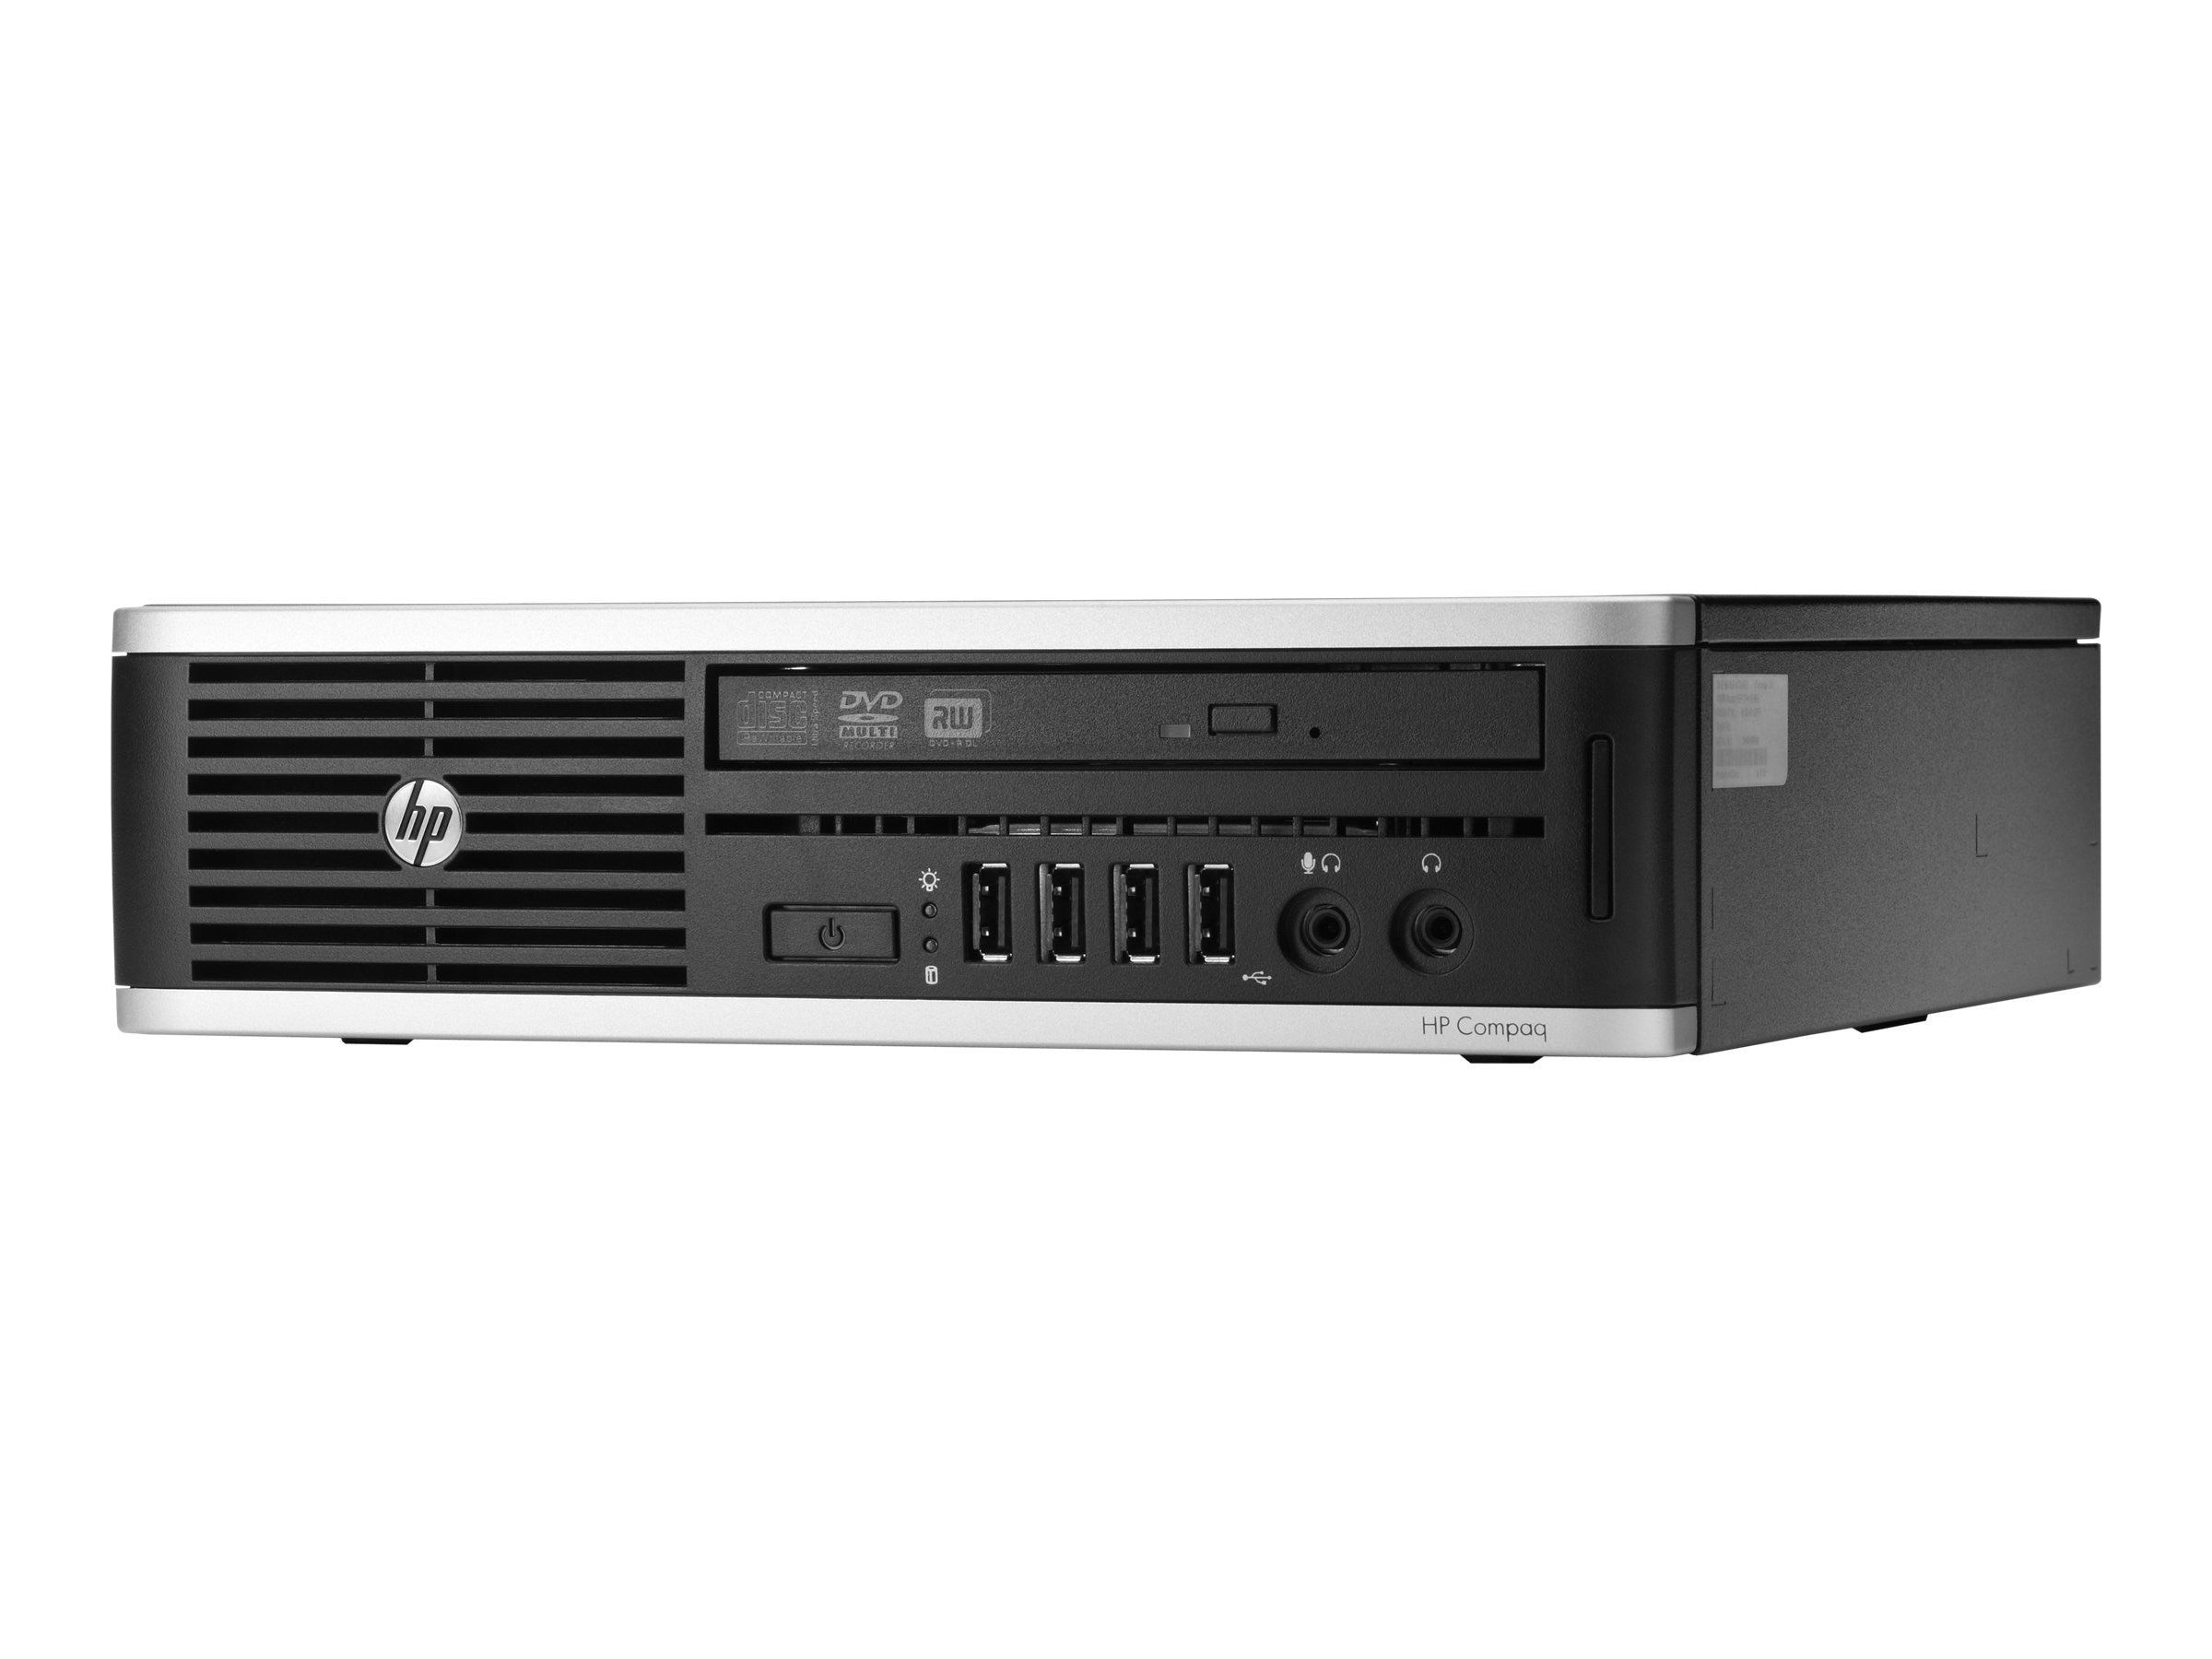 HP SignagePlayer mp8200 Core i5-2400s 2.5GHz 4GB 160GB abgn GNIC WES7